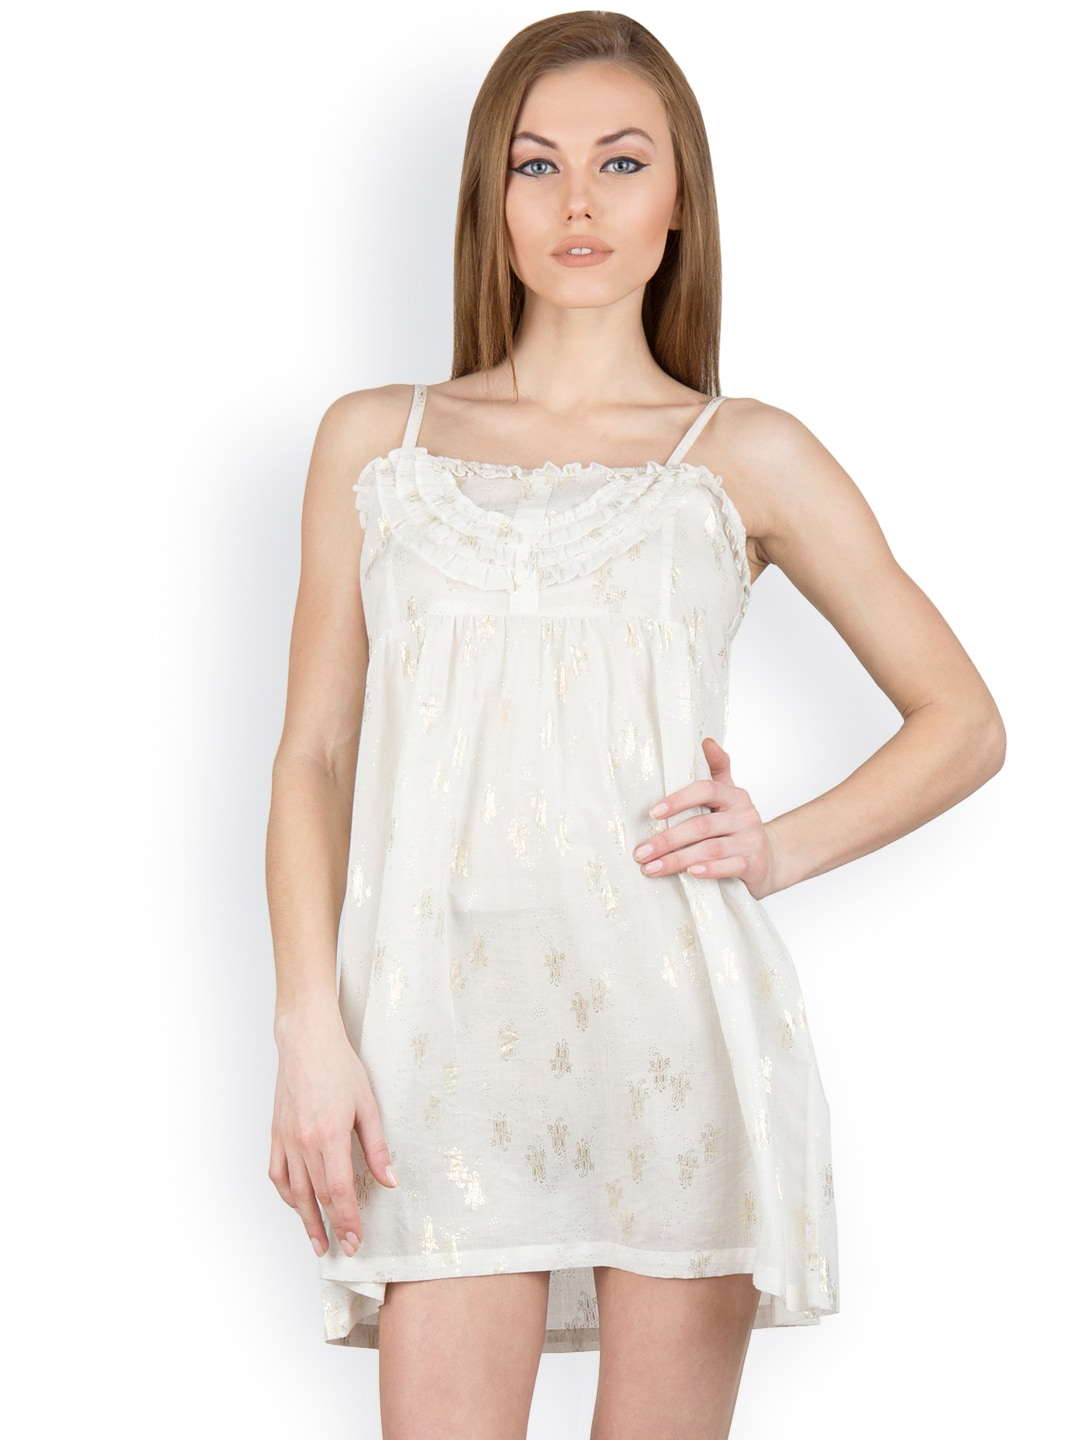 Citypret Off-White Baby-Doll Nightdress CP10193-L